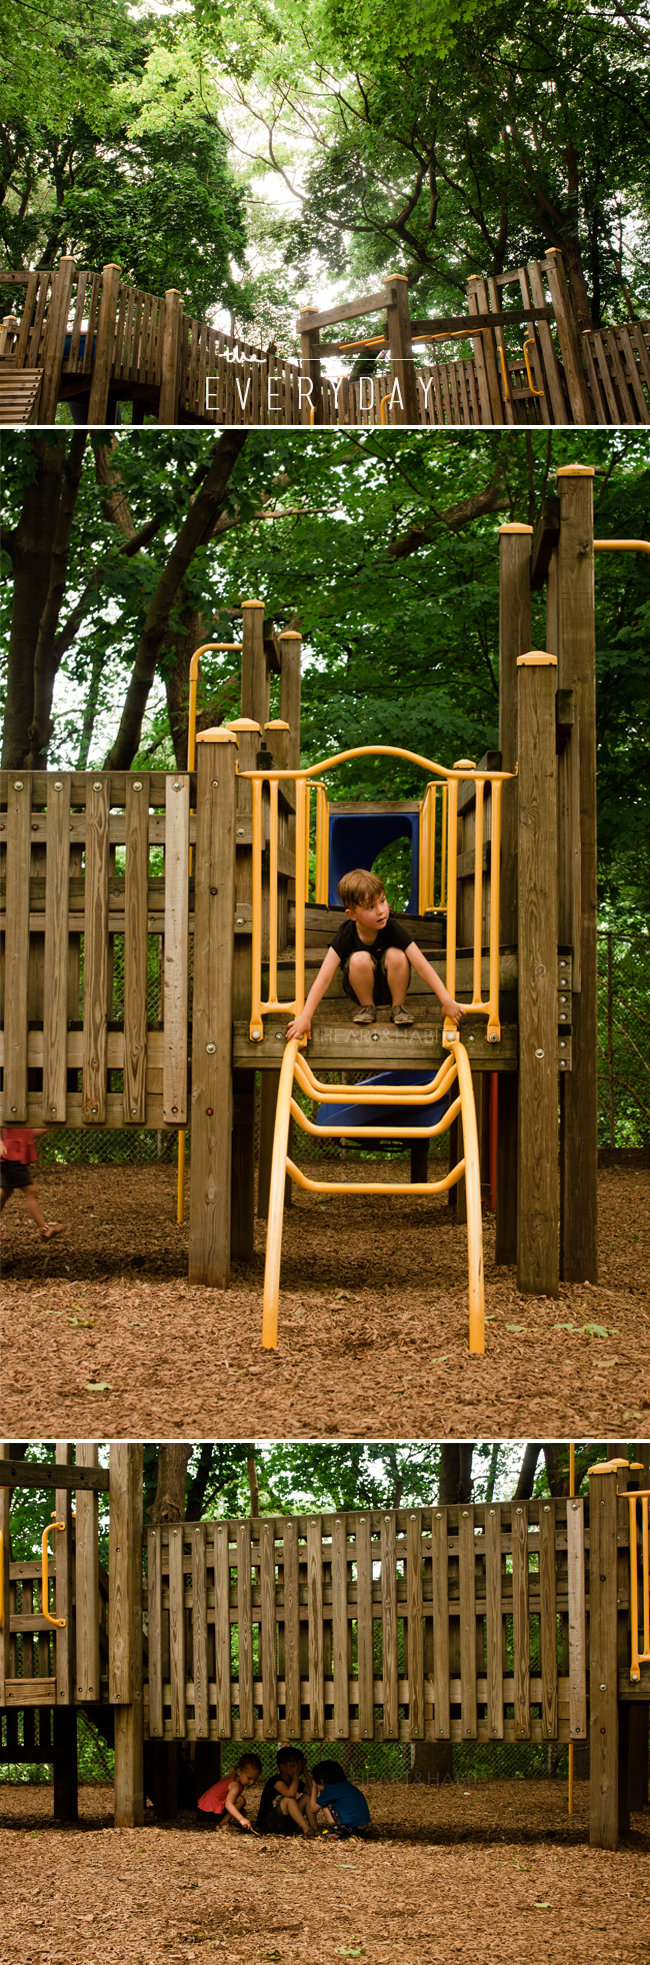 enjoying everyday moments, watching kids play, kids interacting, park play